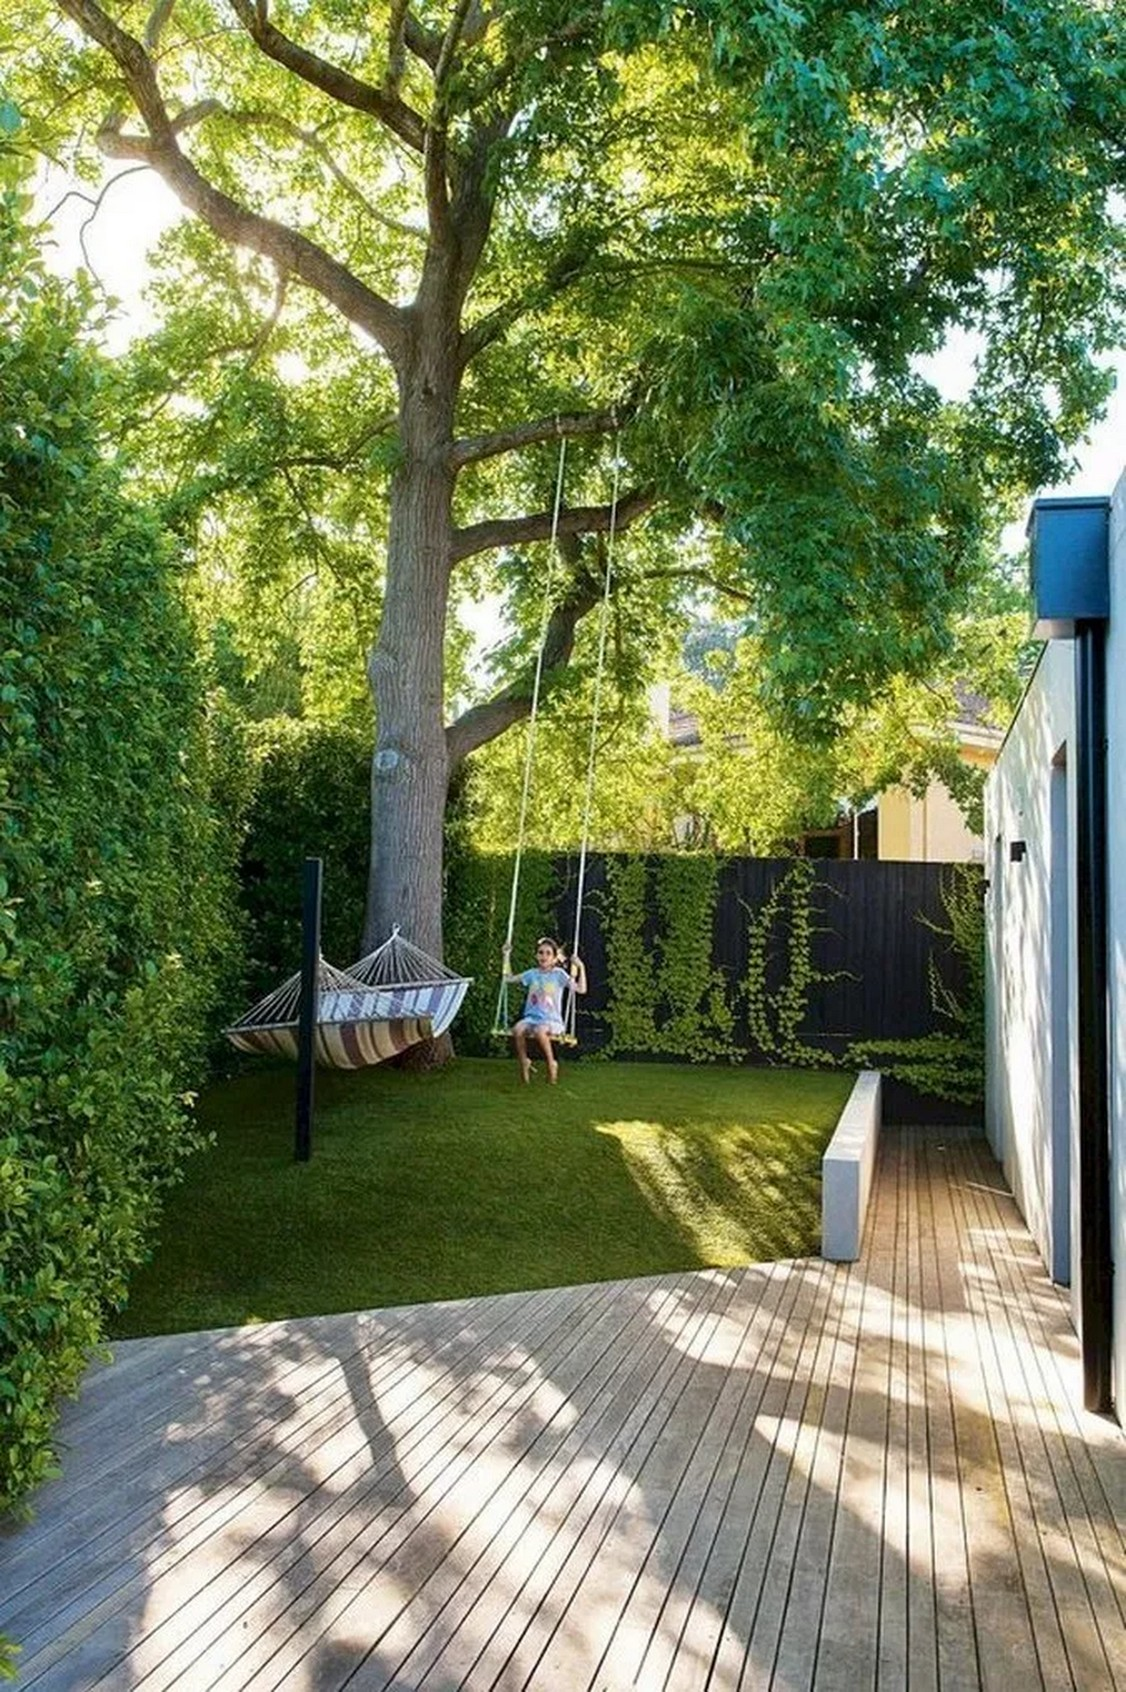 82 Five Great Backyard Landscaping Ideas Home Decor 41